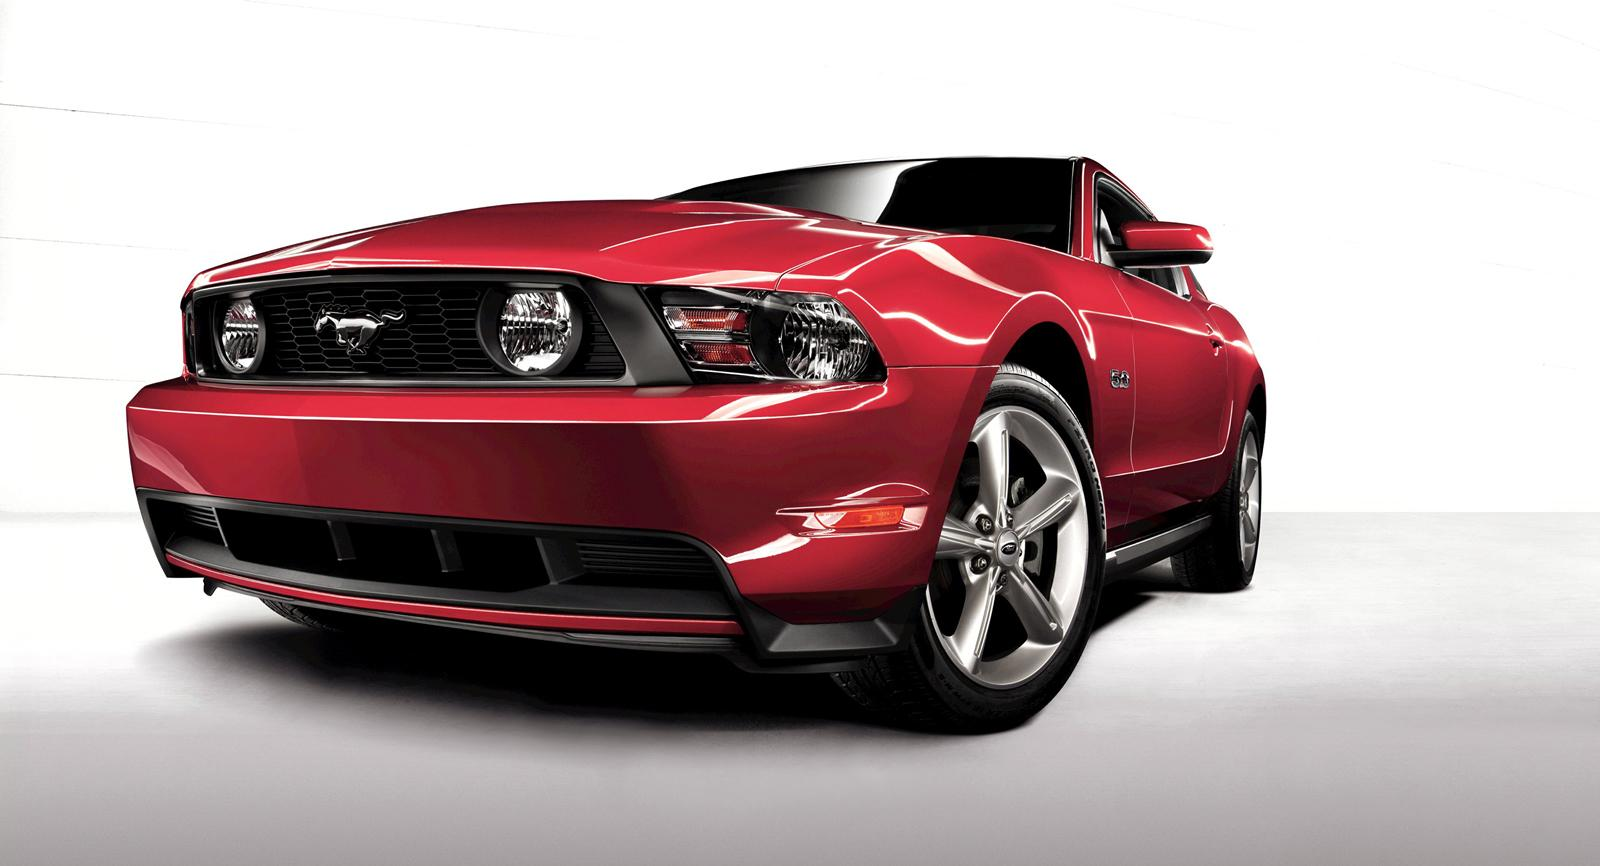 2014 Ford Mustang 13 The 2014 Ford Mustang will feature designs influenced globally